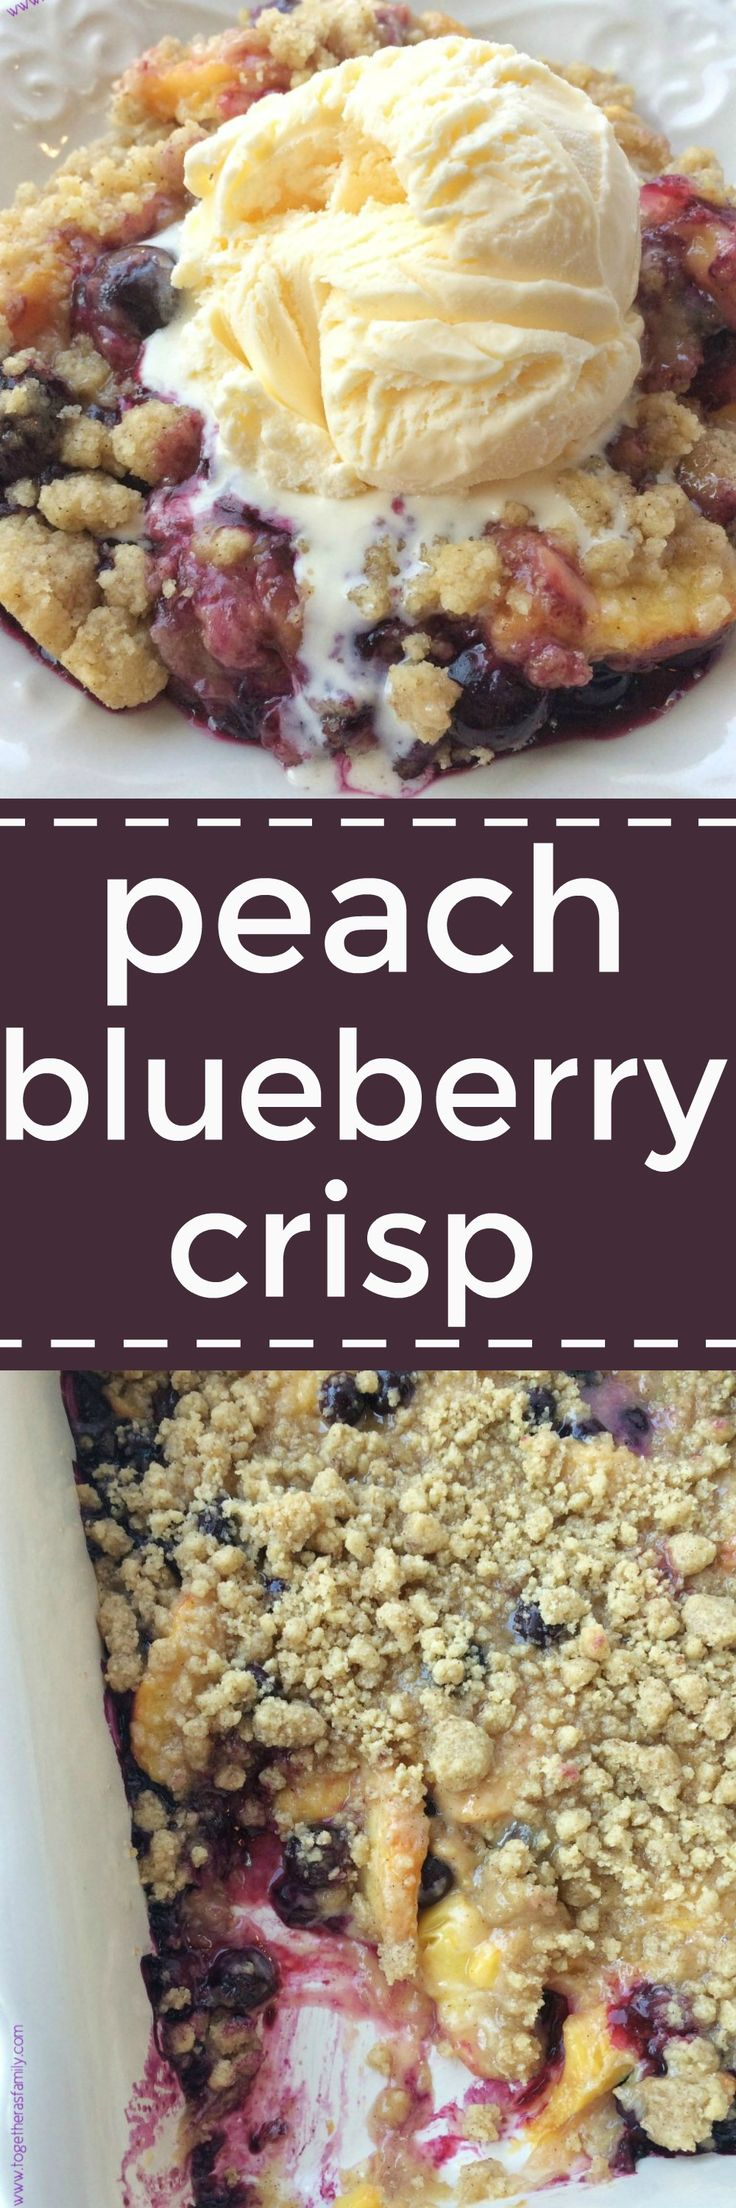 Juicy, fresh peaches and blueberries covered in a butter & brown sugar crumble that crisps up in the oven. This peach blueberry crisp will become a summertime favorite dessert with all the ripe produc